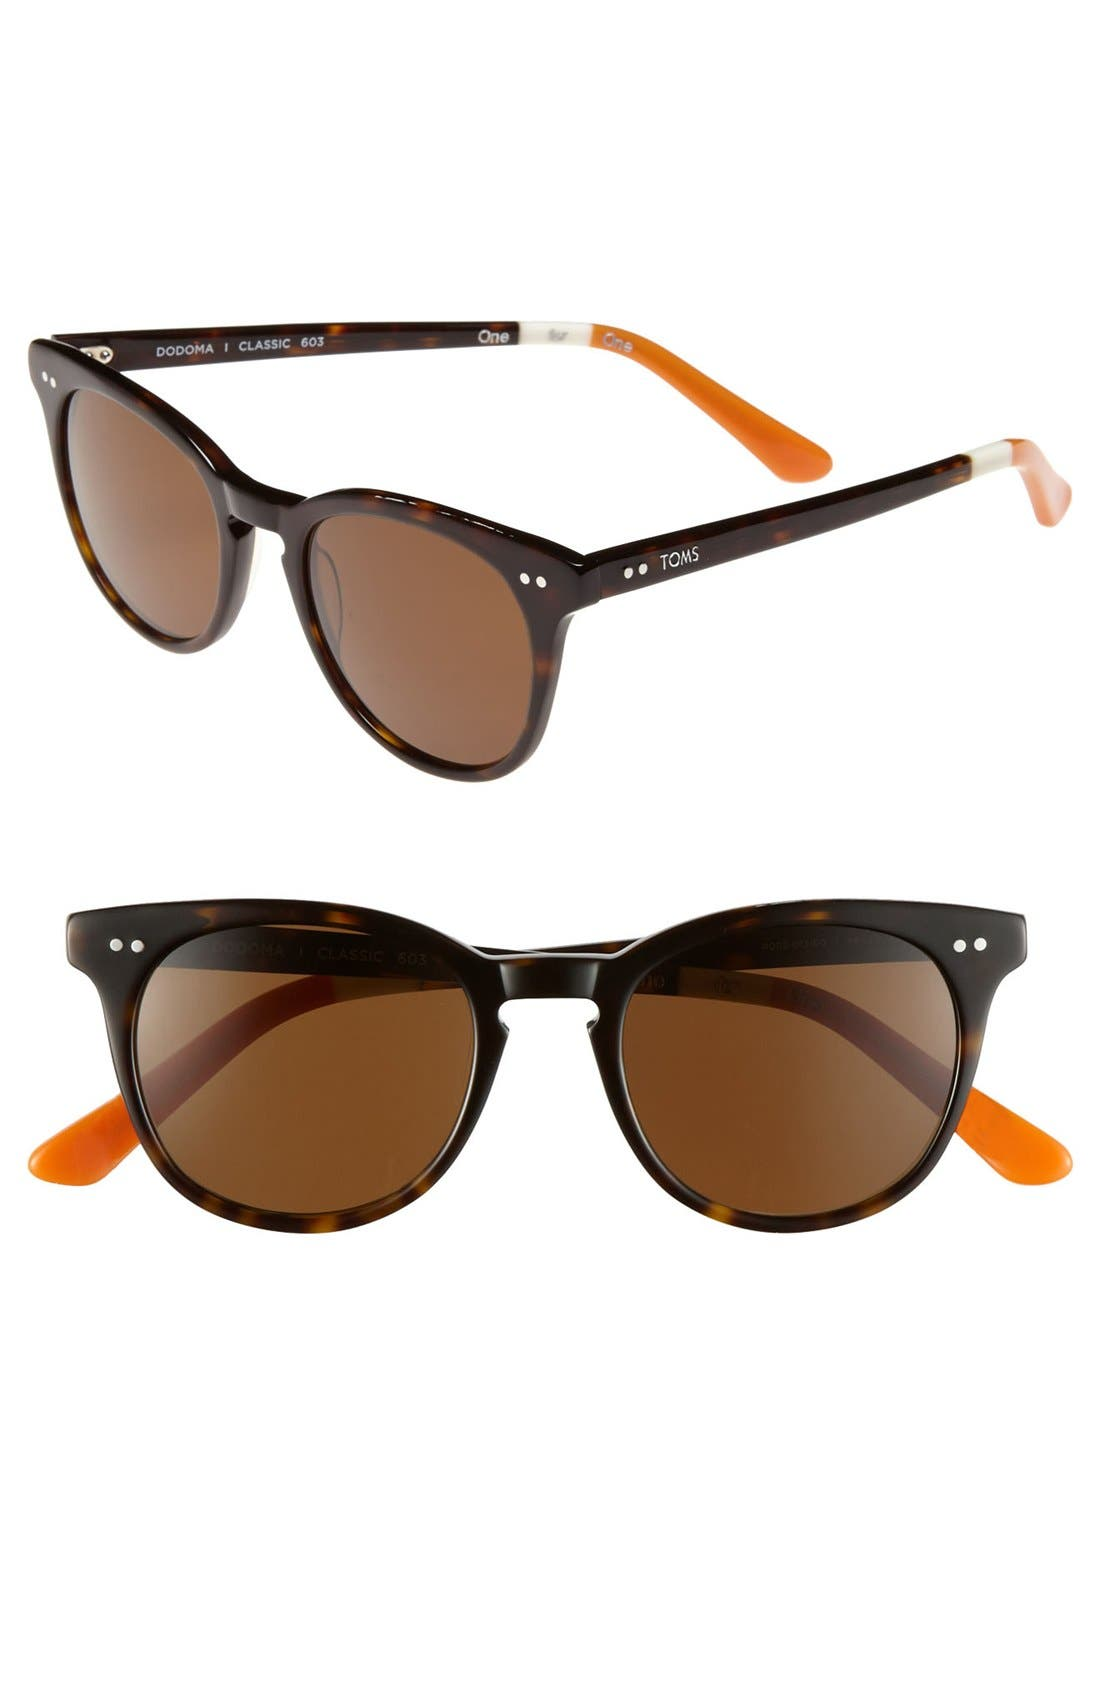 Main Image - TOMS 'Dodoma - Classic 603' Polarized 48mm Sunglasses